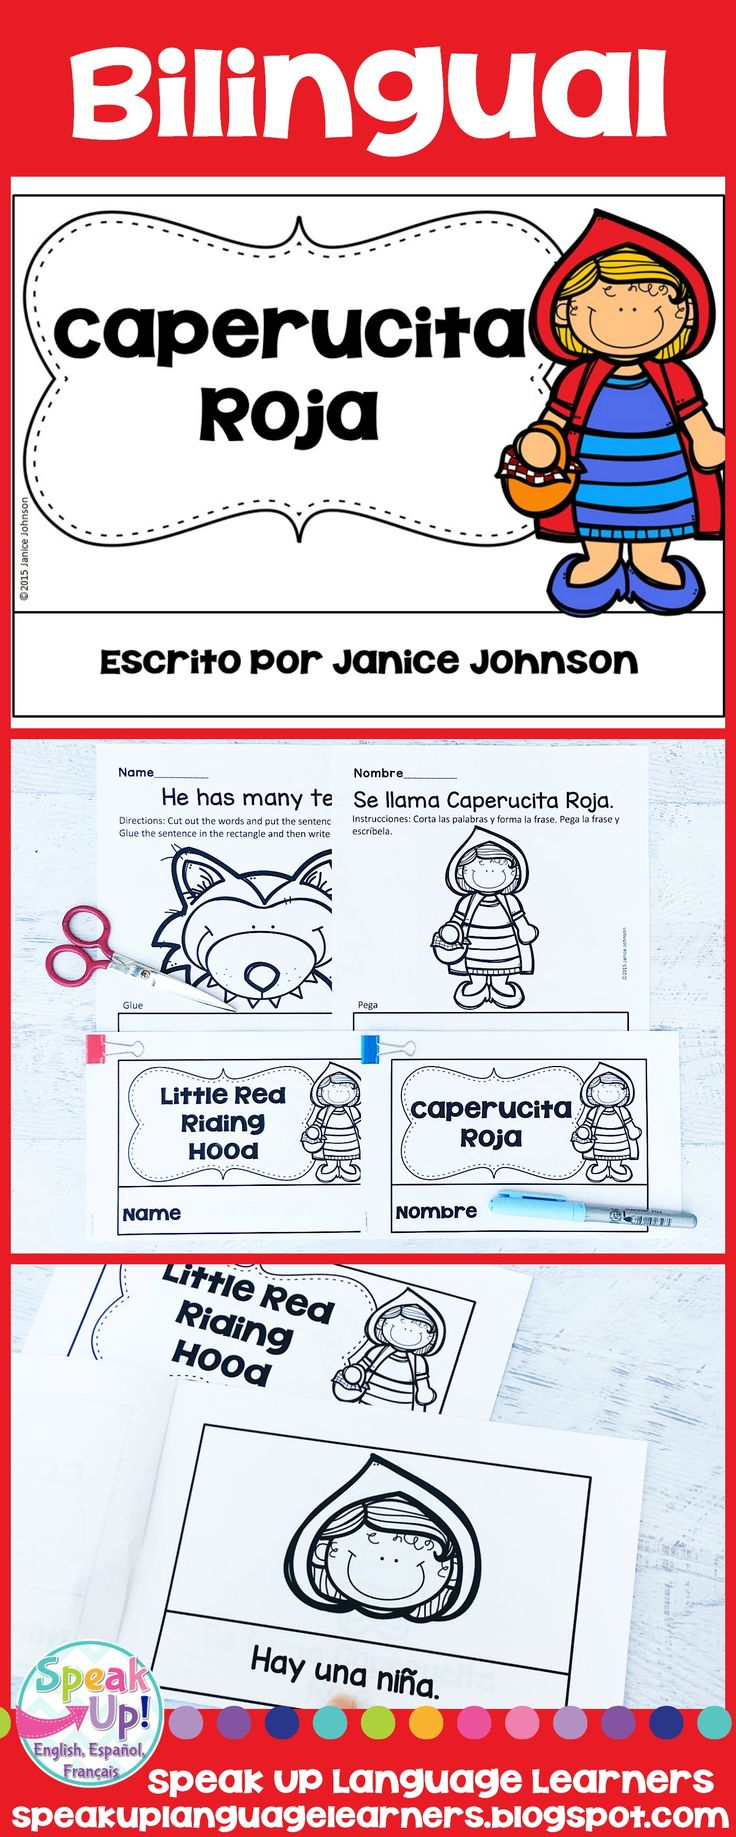 Bilingual Caperucita Roja Simplified Red Riding Hood Spanish reader & Sentence forming pages